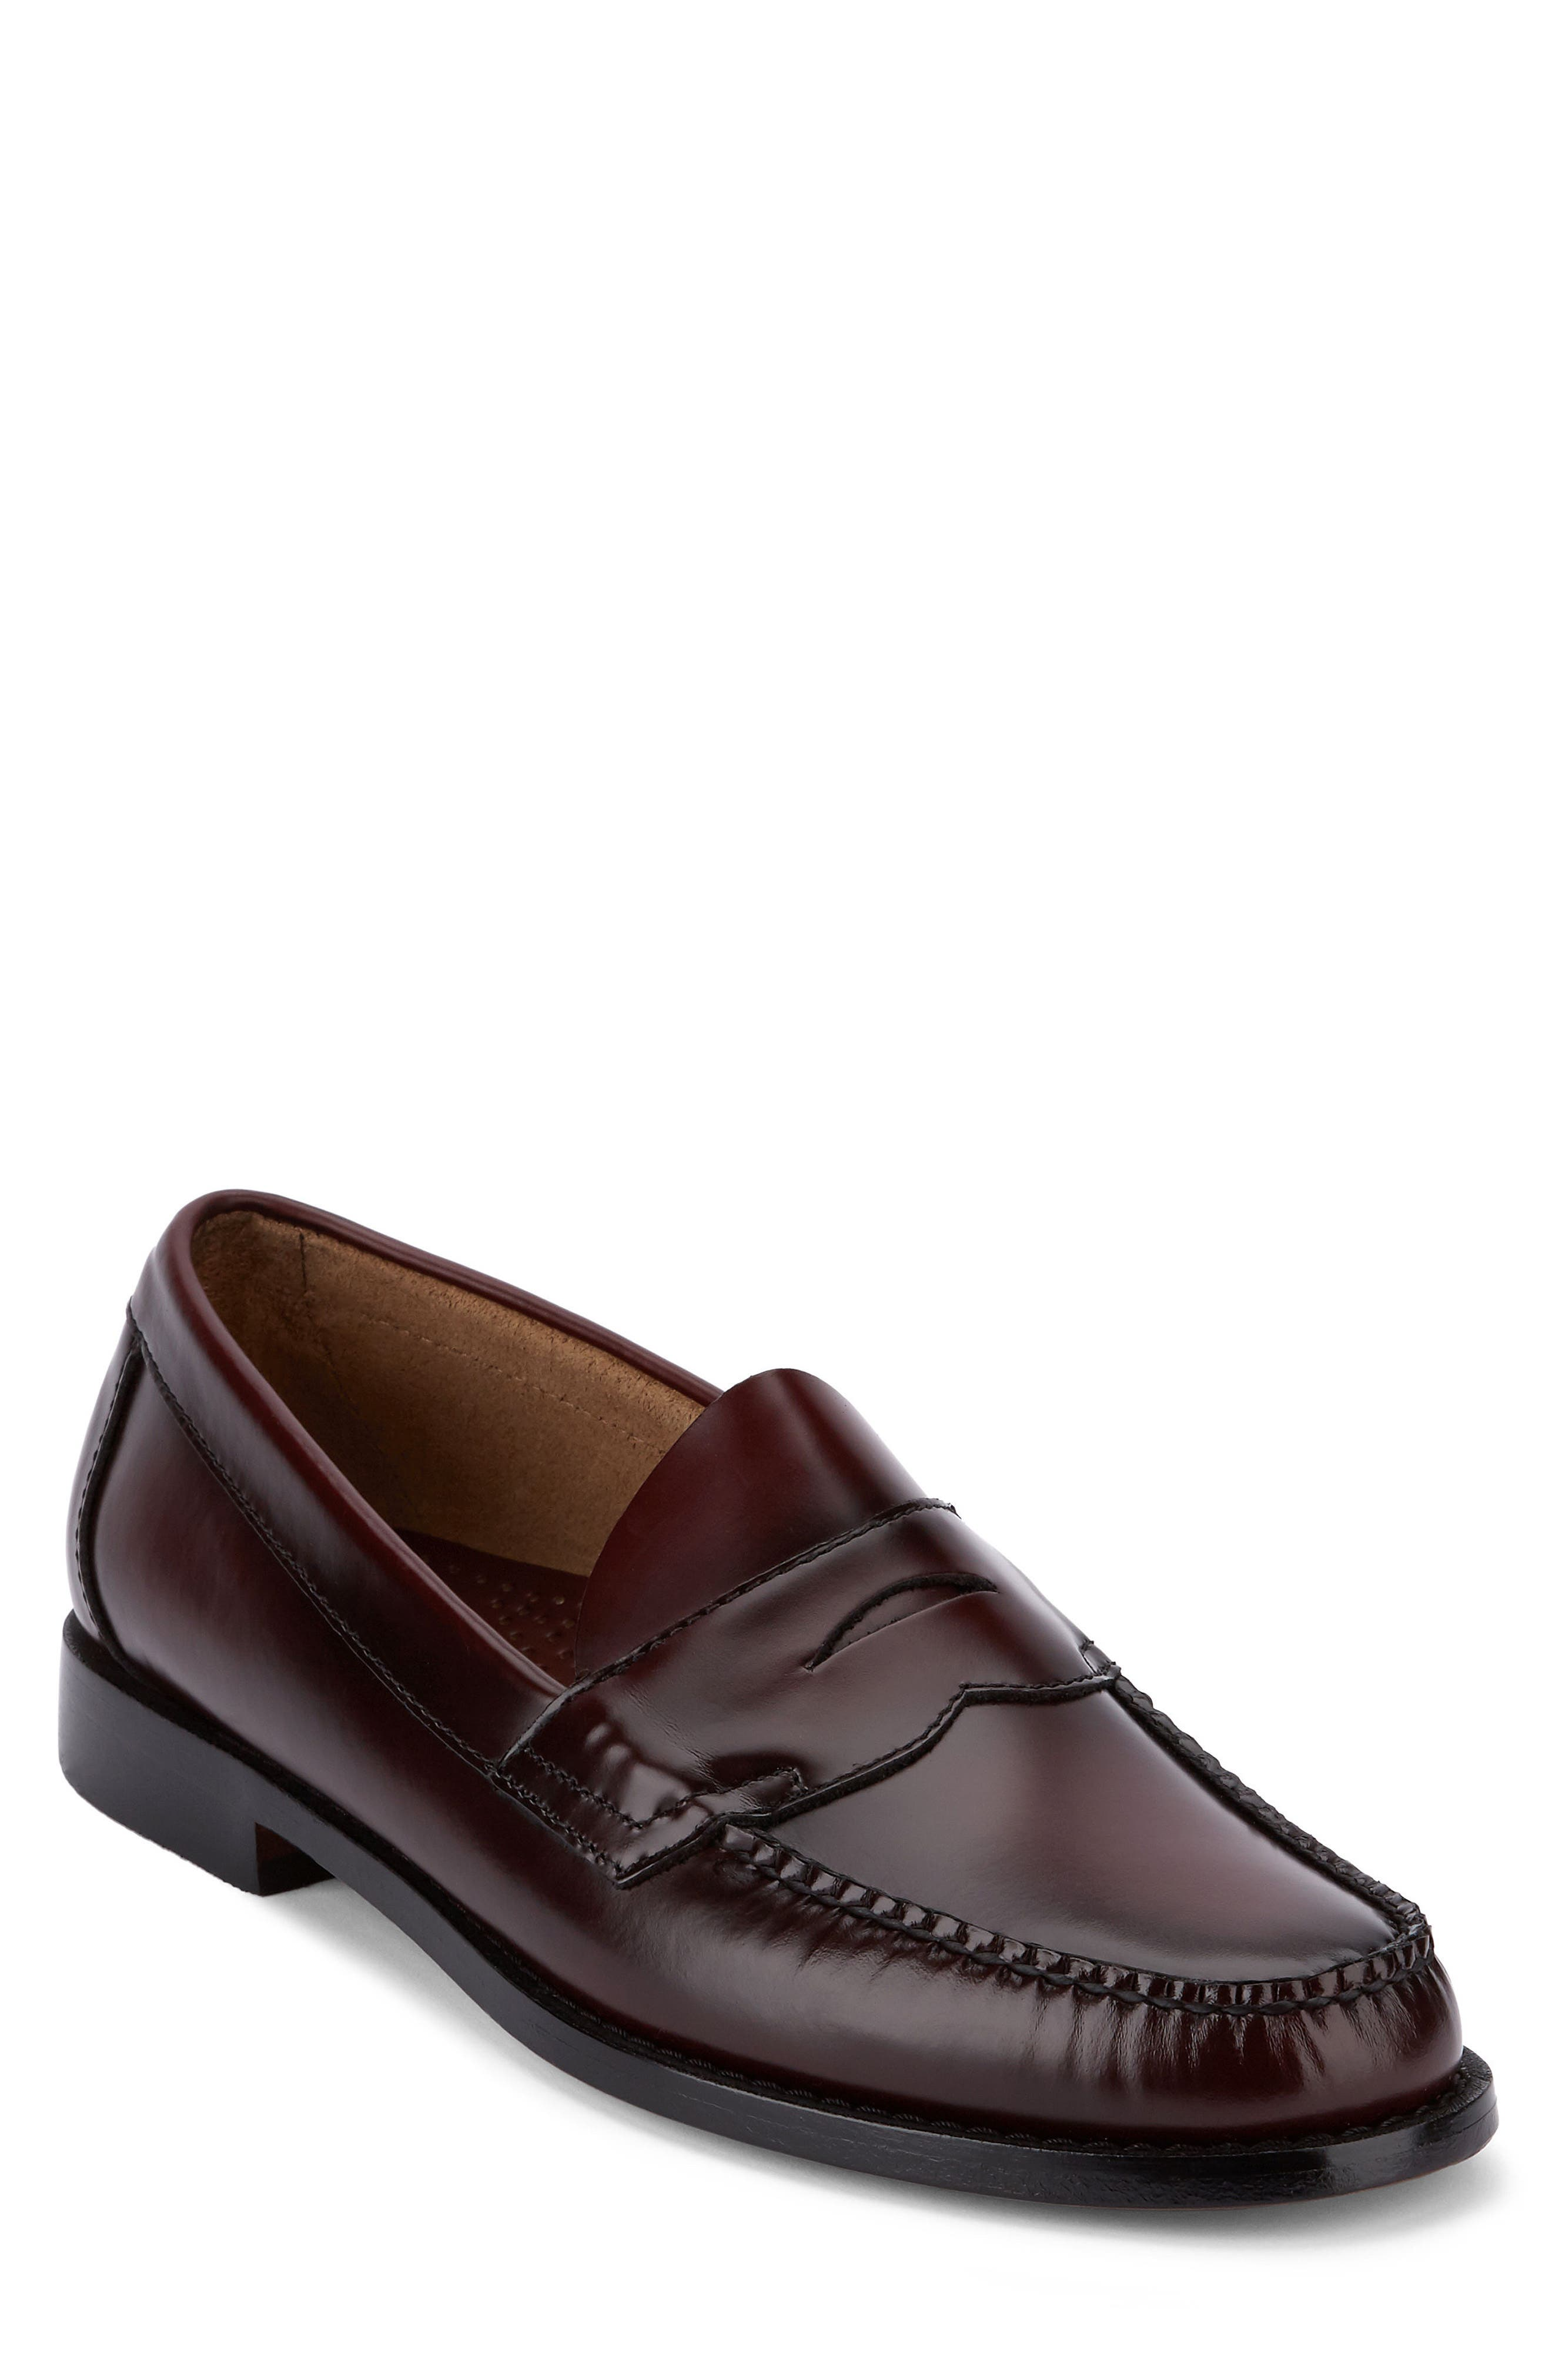 Logan Penny Loafer,                             Main thumbnail 1, color,                             Burgundy Leather